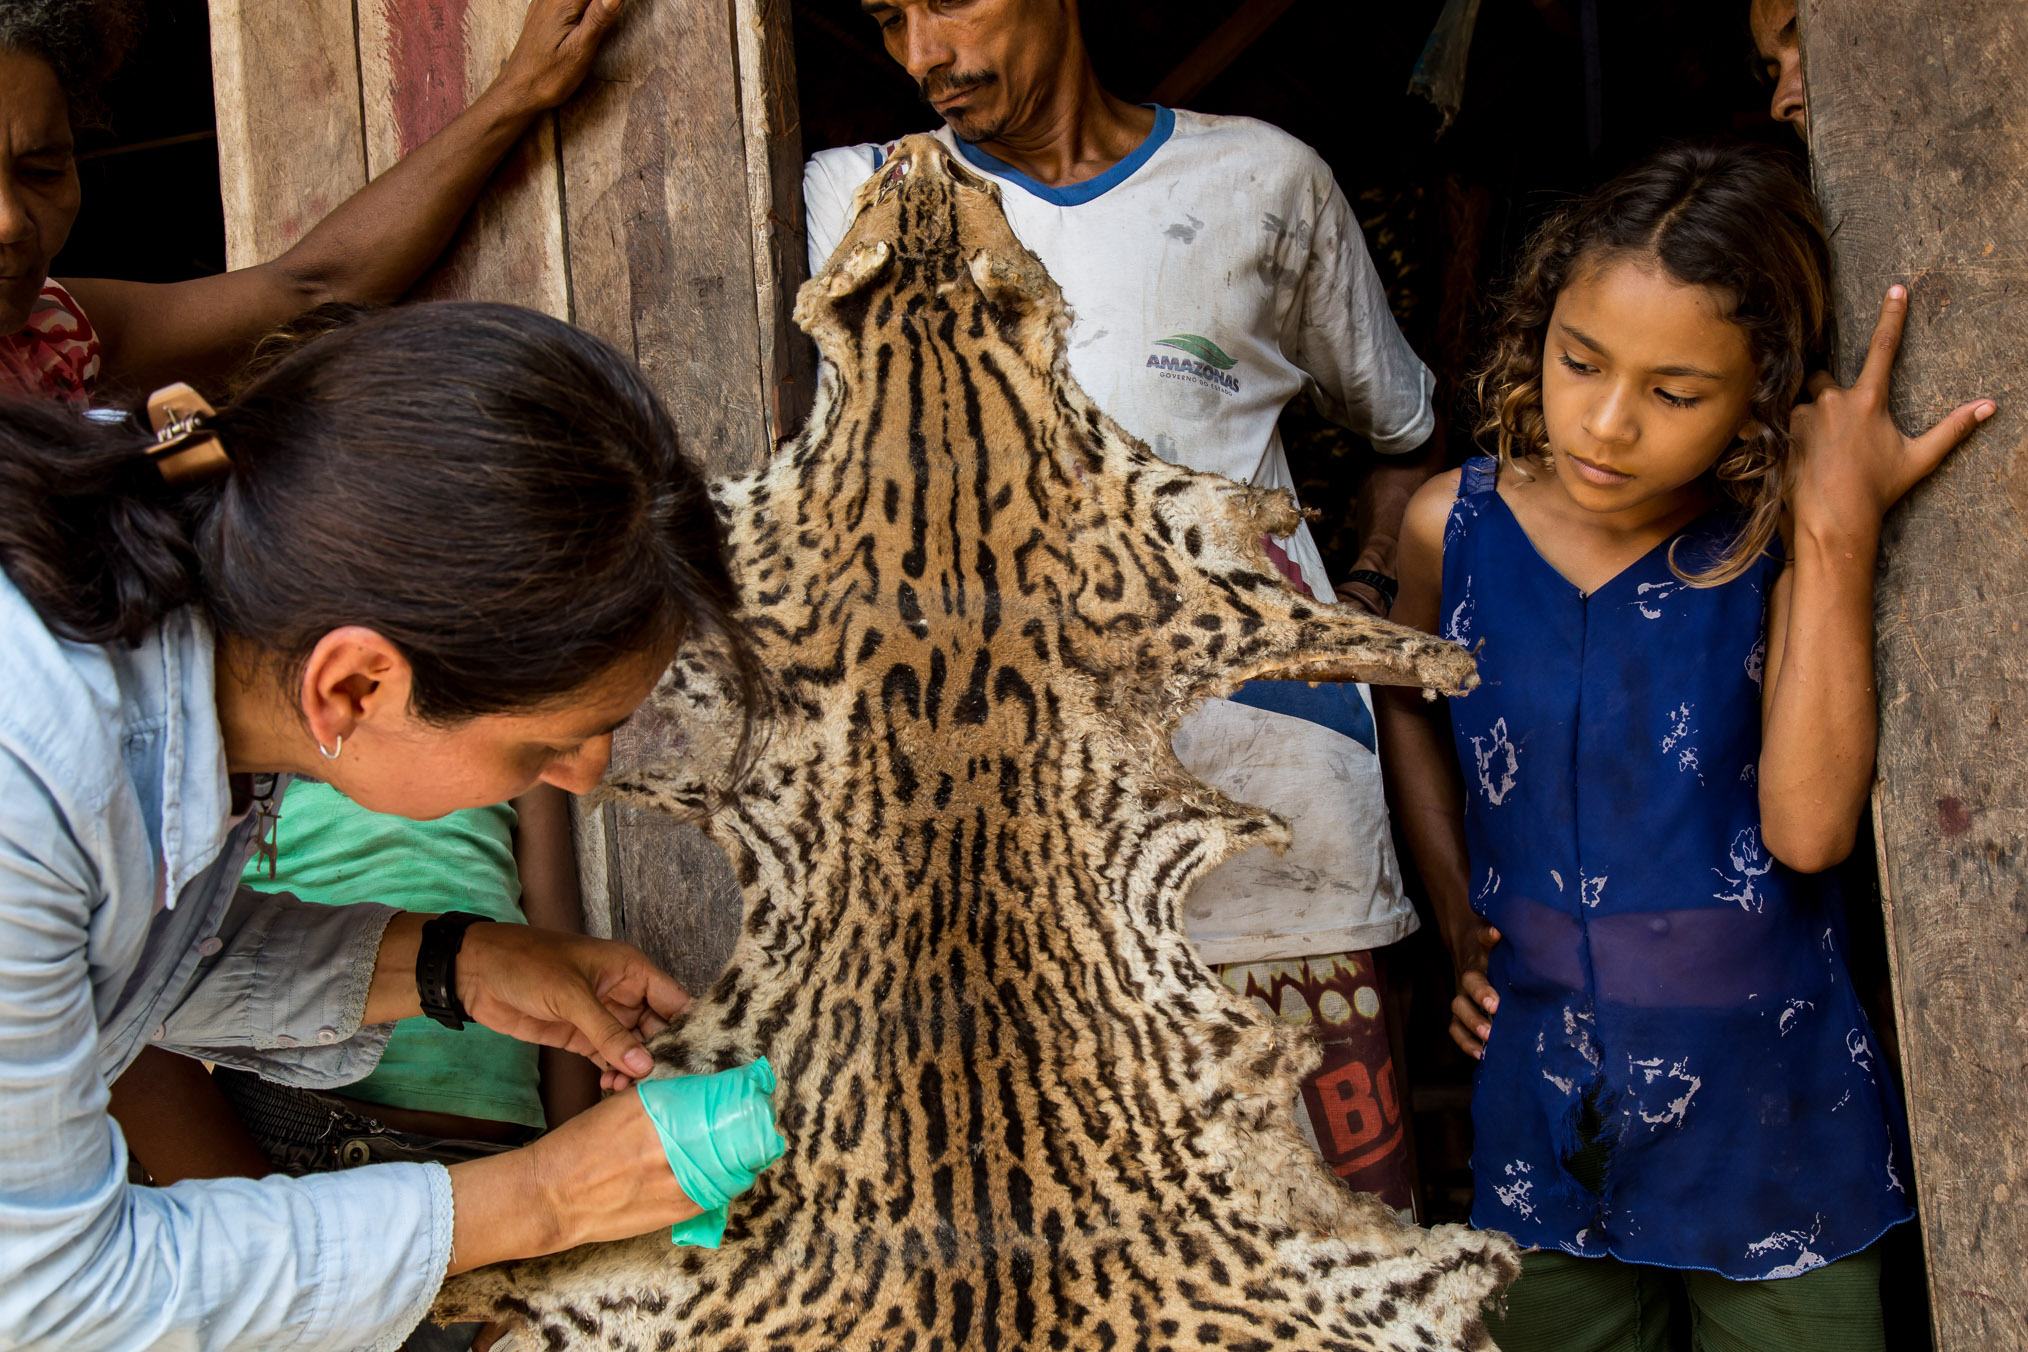 Alejandra Duarte takes a hair sample from a cat pelt. Some riberinhos live in isolated homes, eating only what they can hunt and grow.